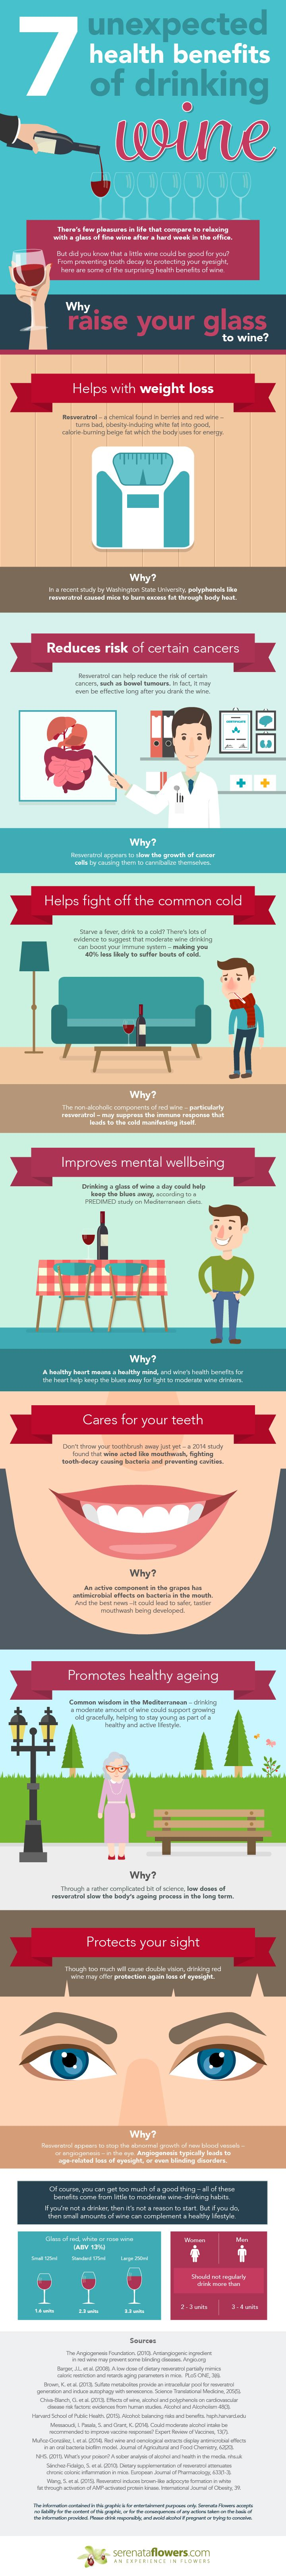 7 Unexpected Health Benefits of Drinking Wine #infographic #Health #Wine